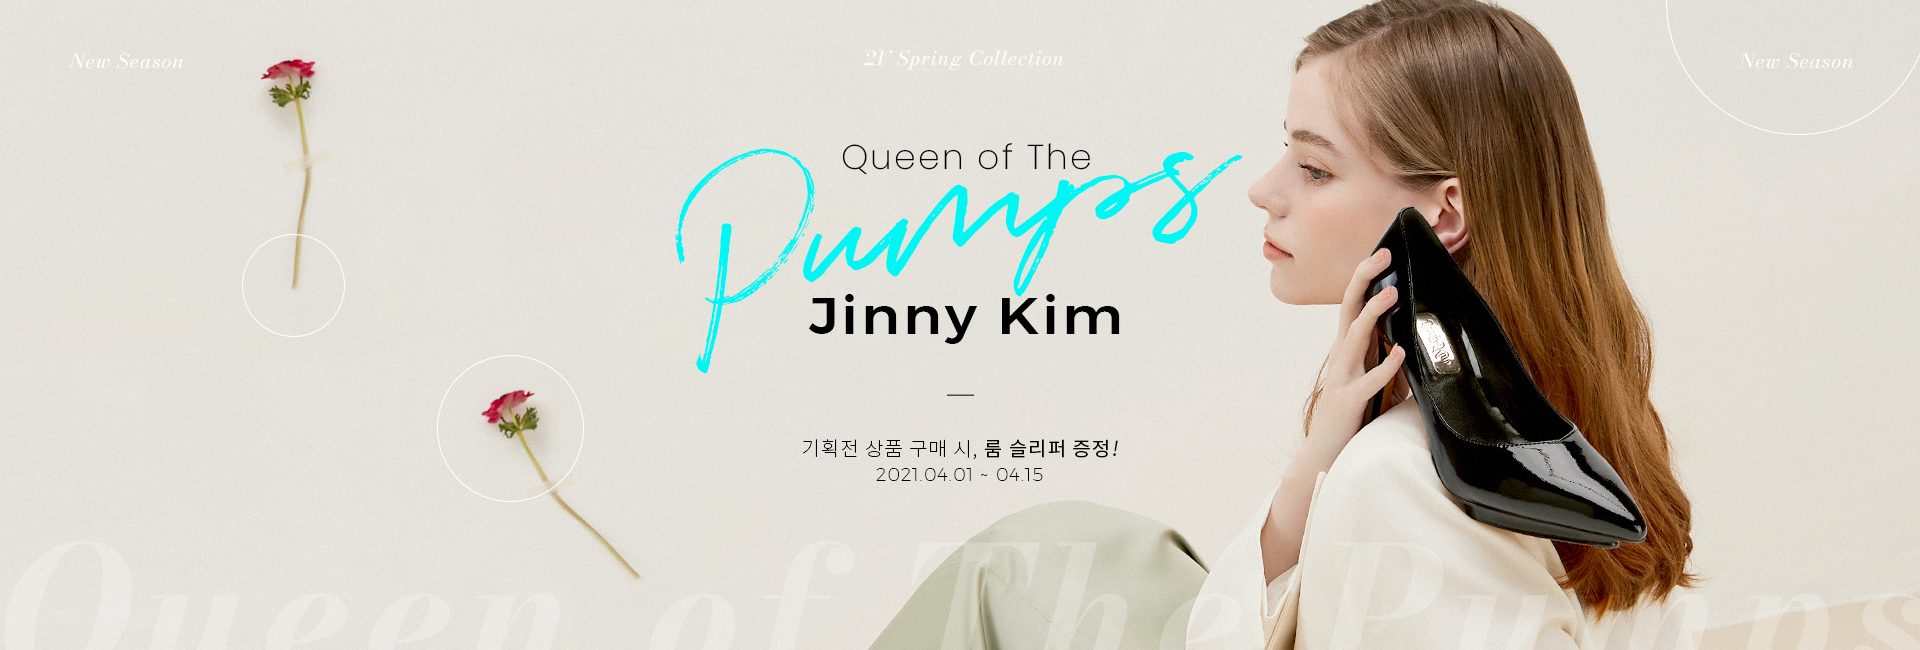 Queen of The Pumps, JINNY KIM